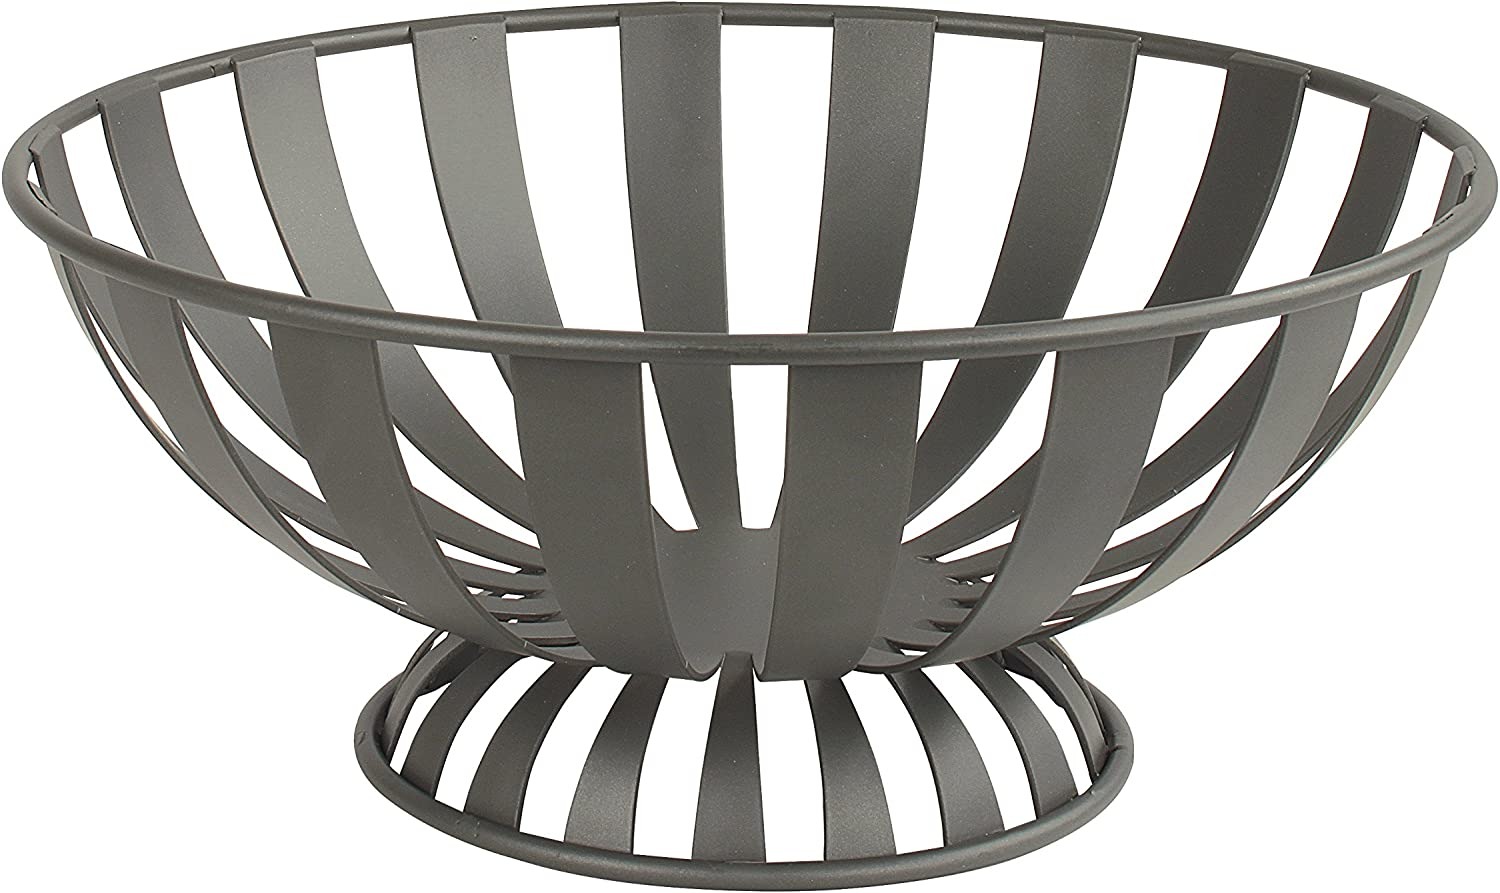 Spectrum Diversified Stripe Bowl, Metal Basket Table & Dining Table Wire Basket & Kitchen Organizer, Kitchen Décor, Countertop Fruit Storage, 1 EA, Industrial Gray